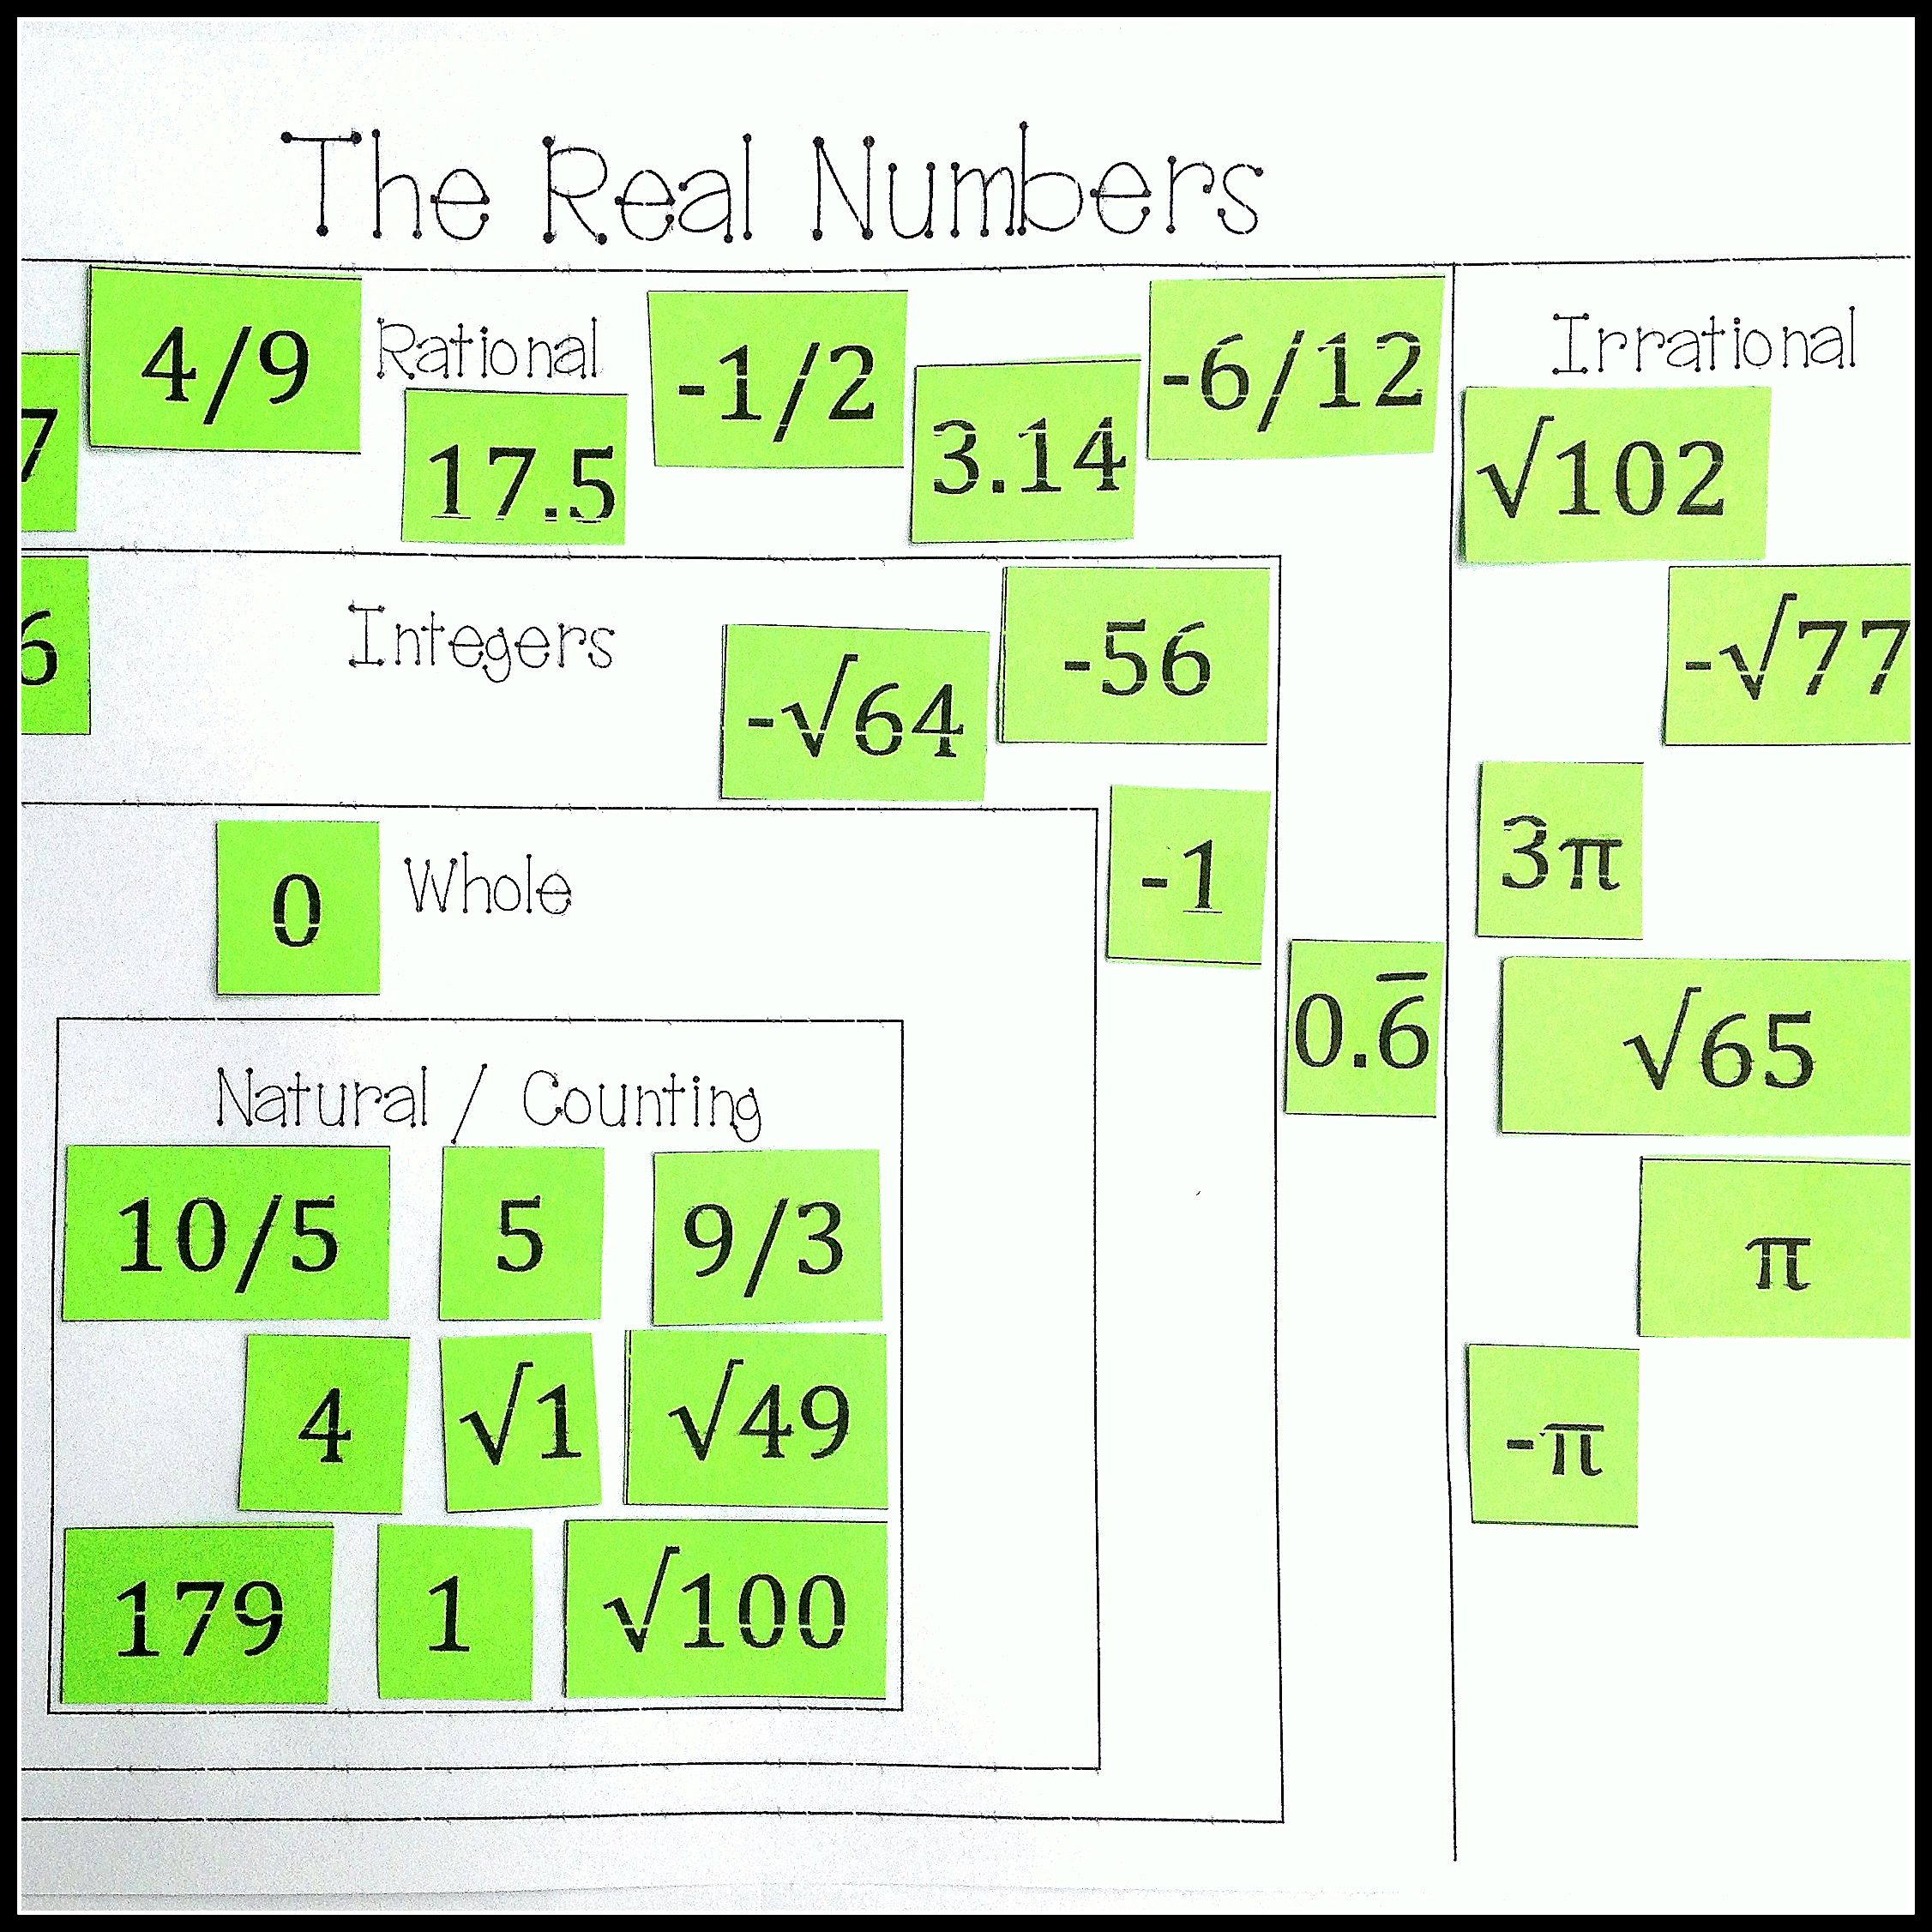 Worksheets Real Number System Worksheet real numbers system card sort rational irrational integers whole great activity for 8th grade math and algebra 1 students to practice sorting the into integ